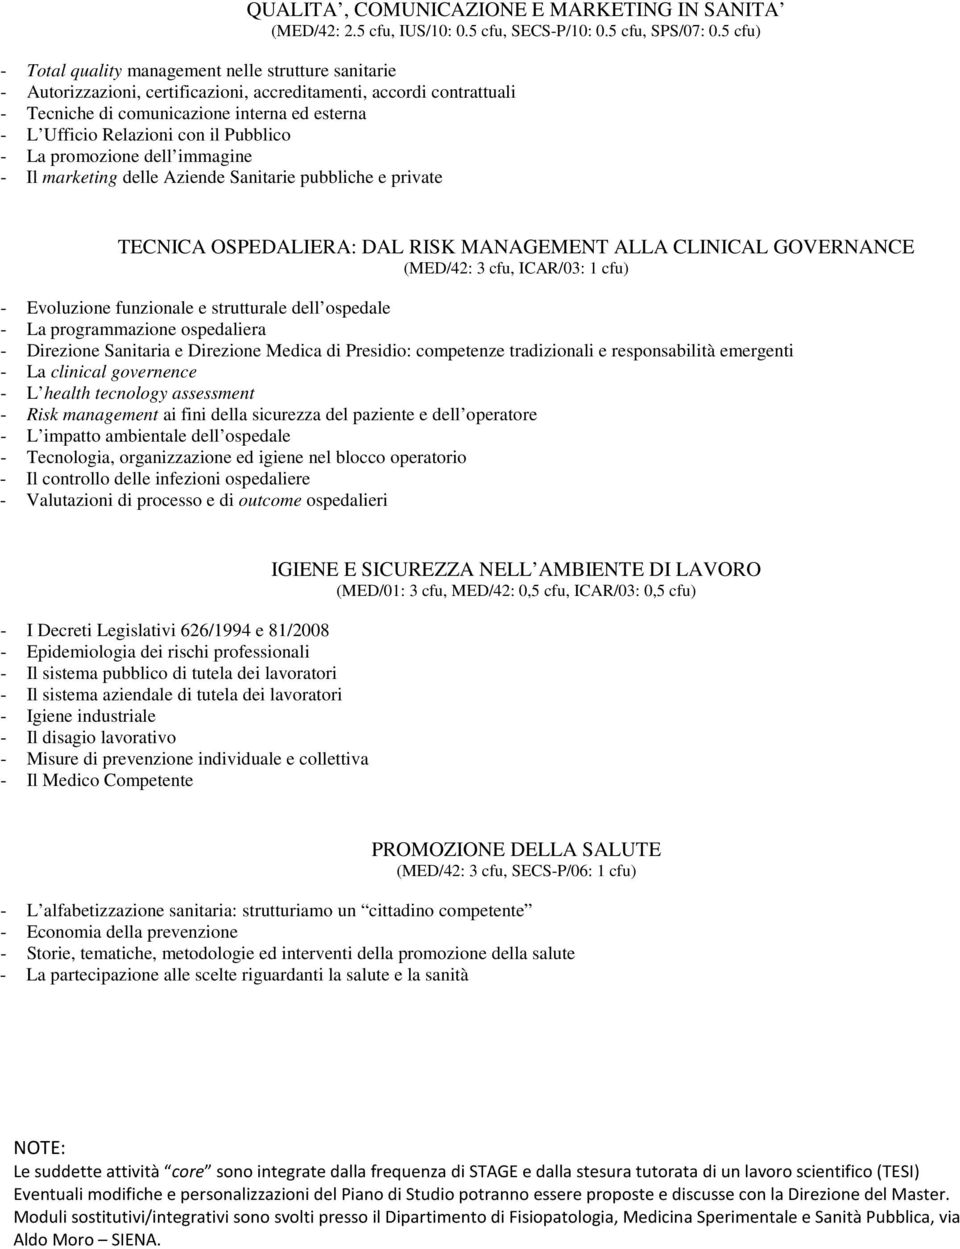 con il Pubblico - La promozione dell immagine - Il marketing delle Aziende Sanitarie pubbliche e private TECNICA OSPEDALIERA: DAL RISK MANAGEMENT ALLA CLINICAL GOVERNANCE (MED/42: 3 cfu, ICAR/03: 1